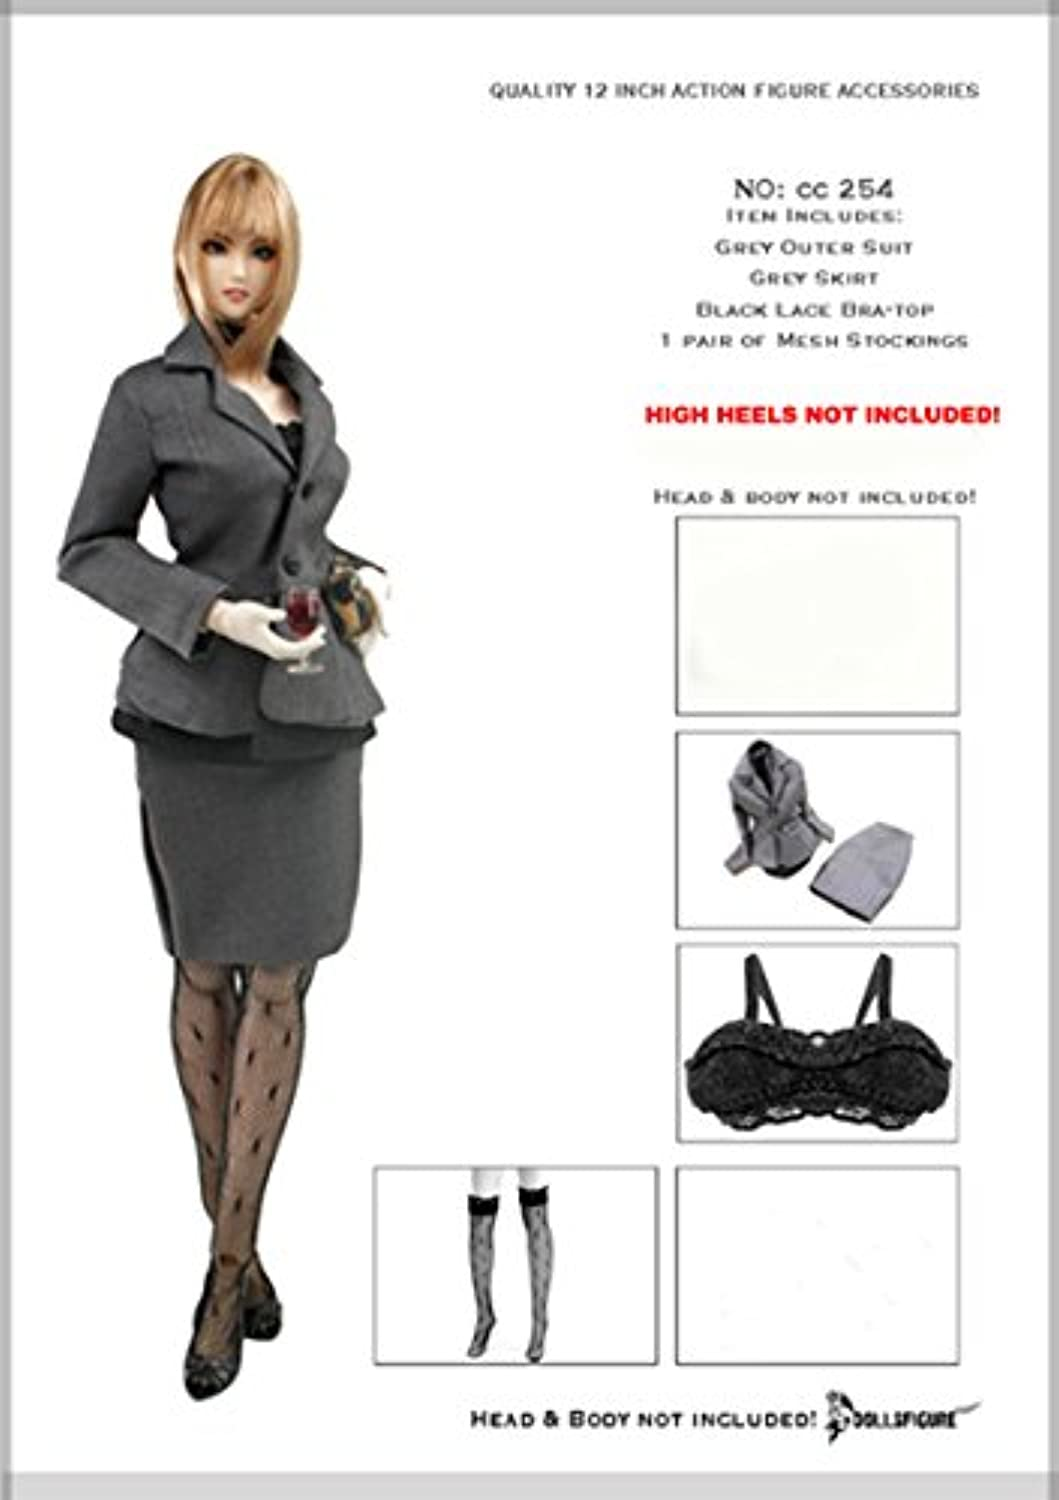 女性秘書 スーツセット Artcreator_BM CC254 1/6 Female Secretary Suit Set